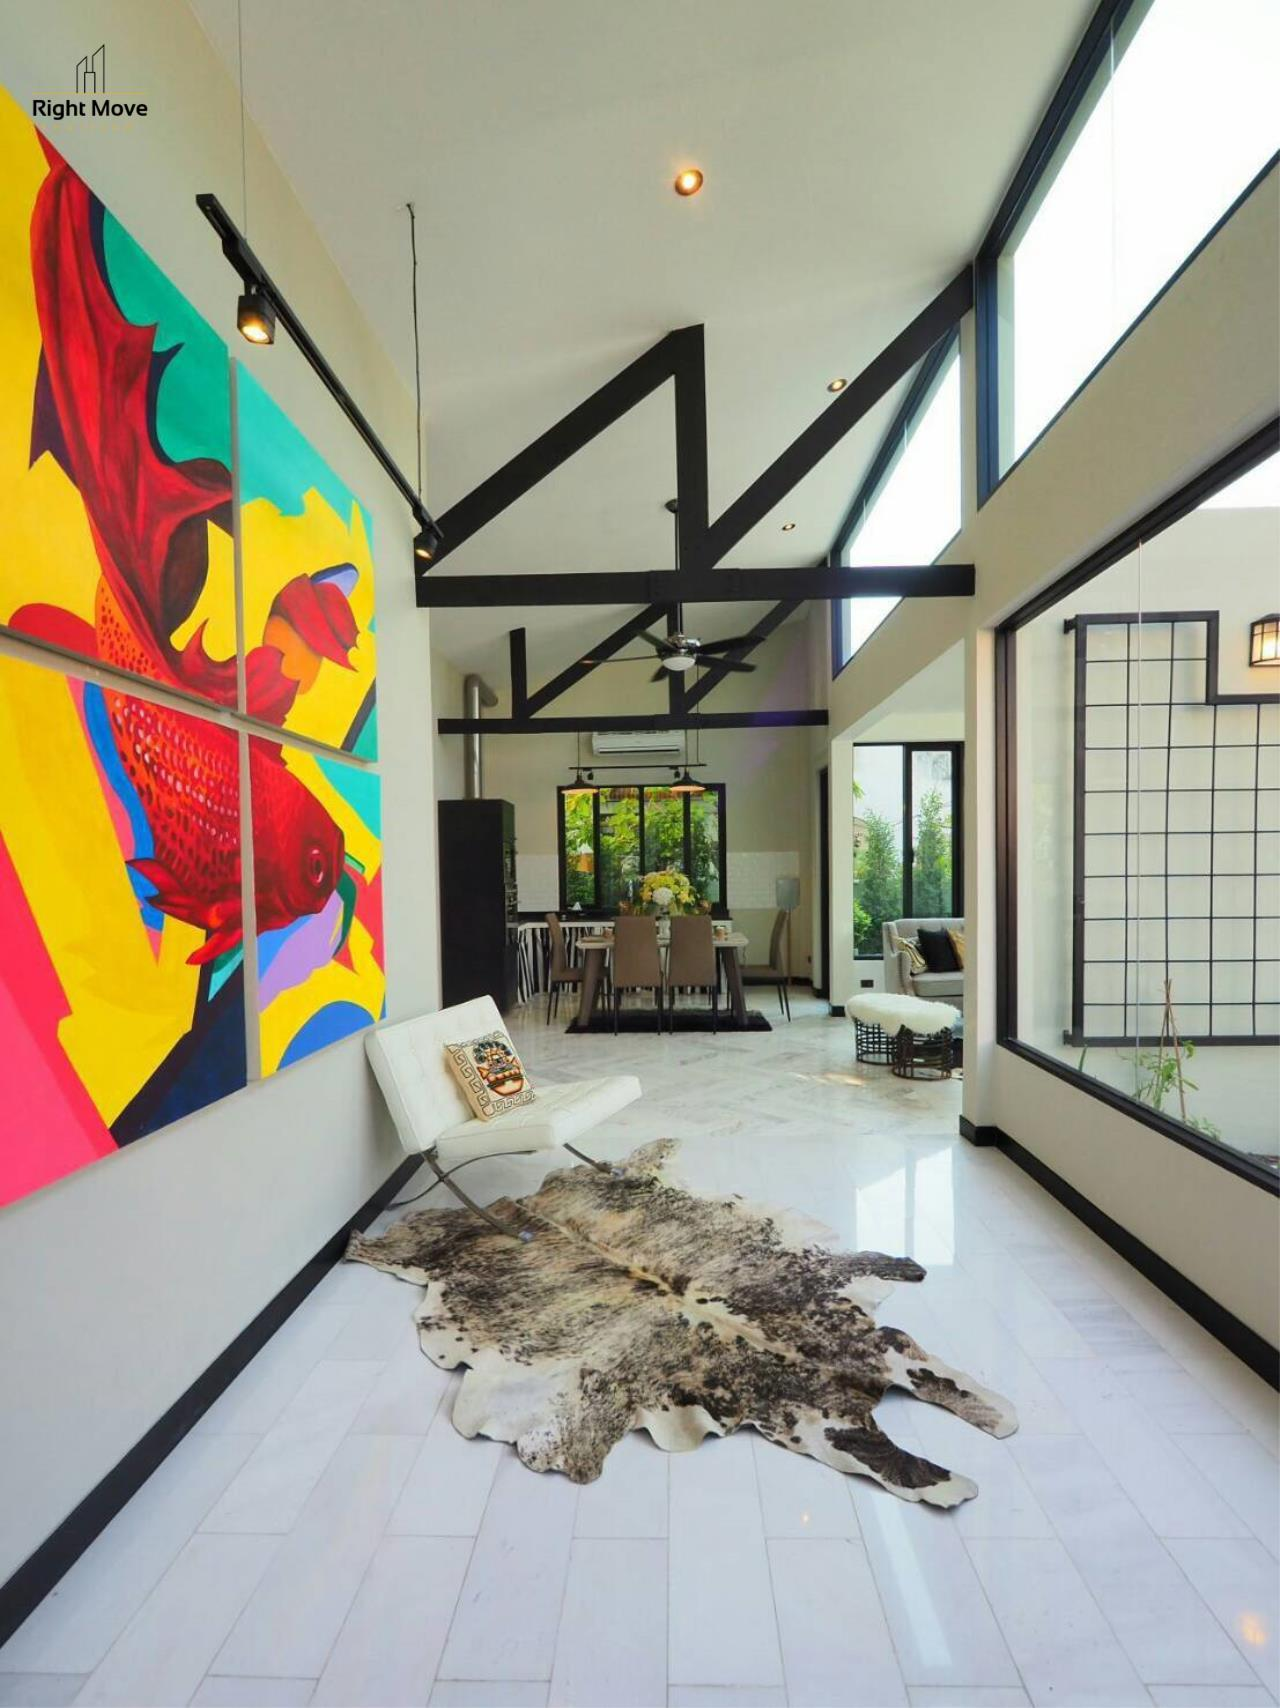 Right Move Thailand Agency's HR874 Single House For Sale 16,500,000 THB 2 Bedrooms 150 Sqm 7